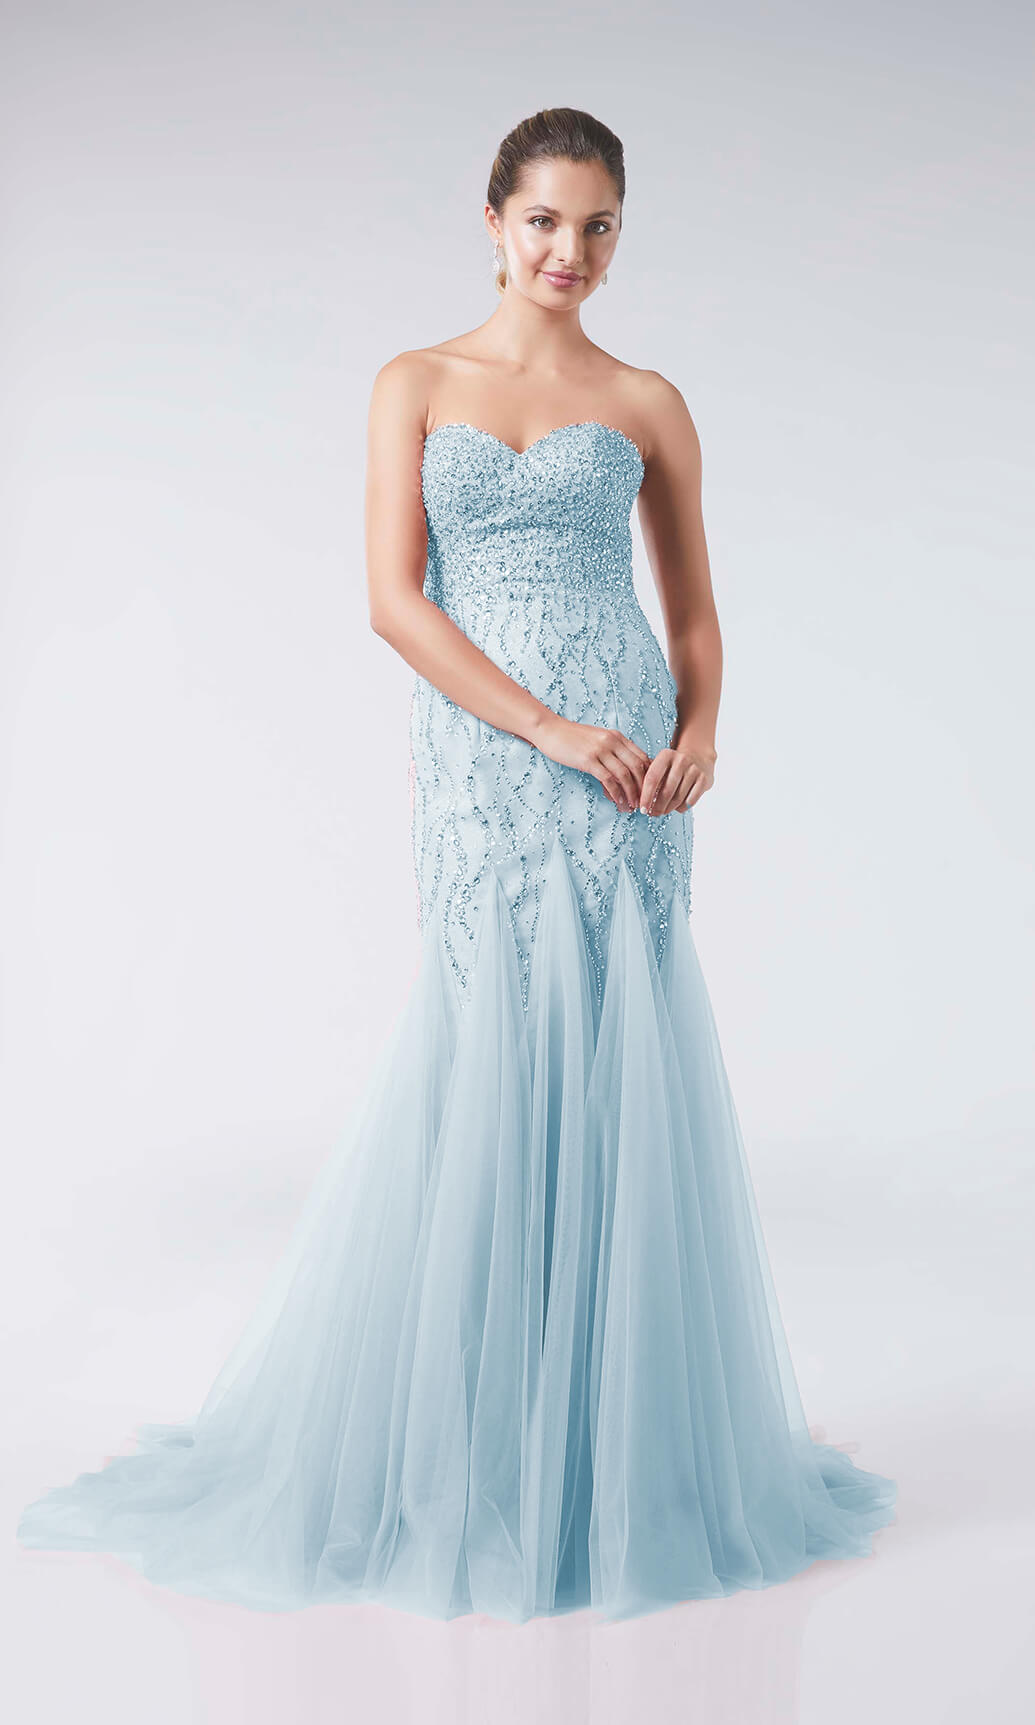 Celeste Powder Blue Tiffanys Mermaid Style Prom Dress